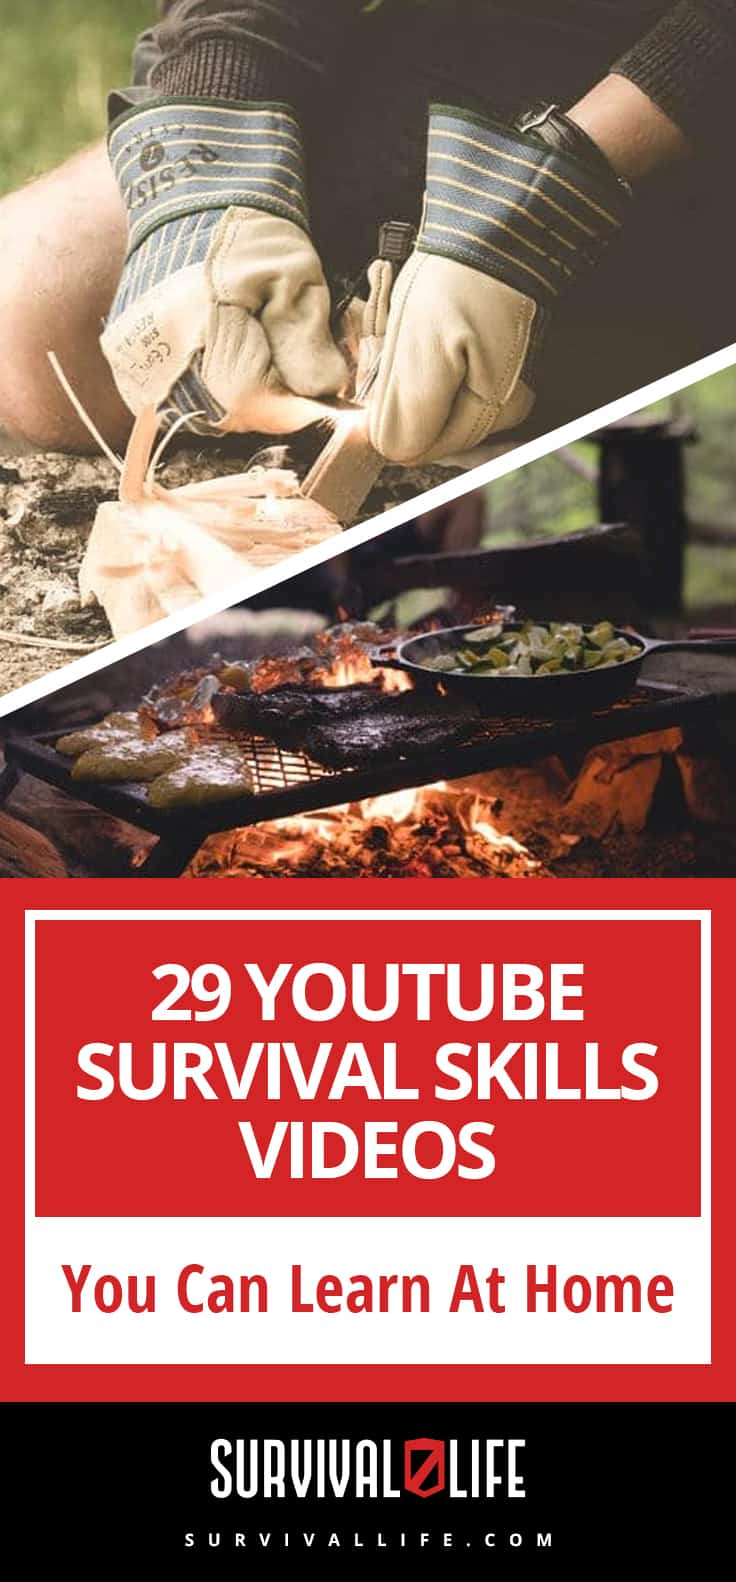 29 YouTube Survival Skills Videos You Can Learn At Home